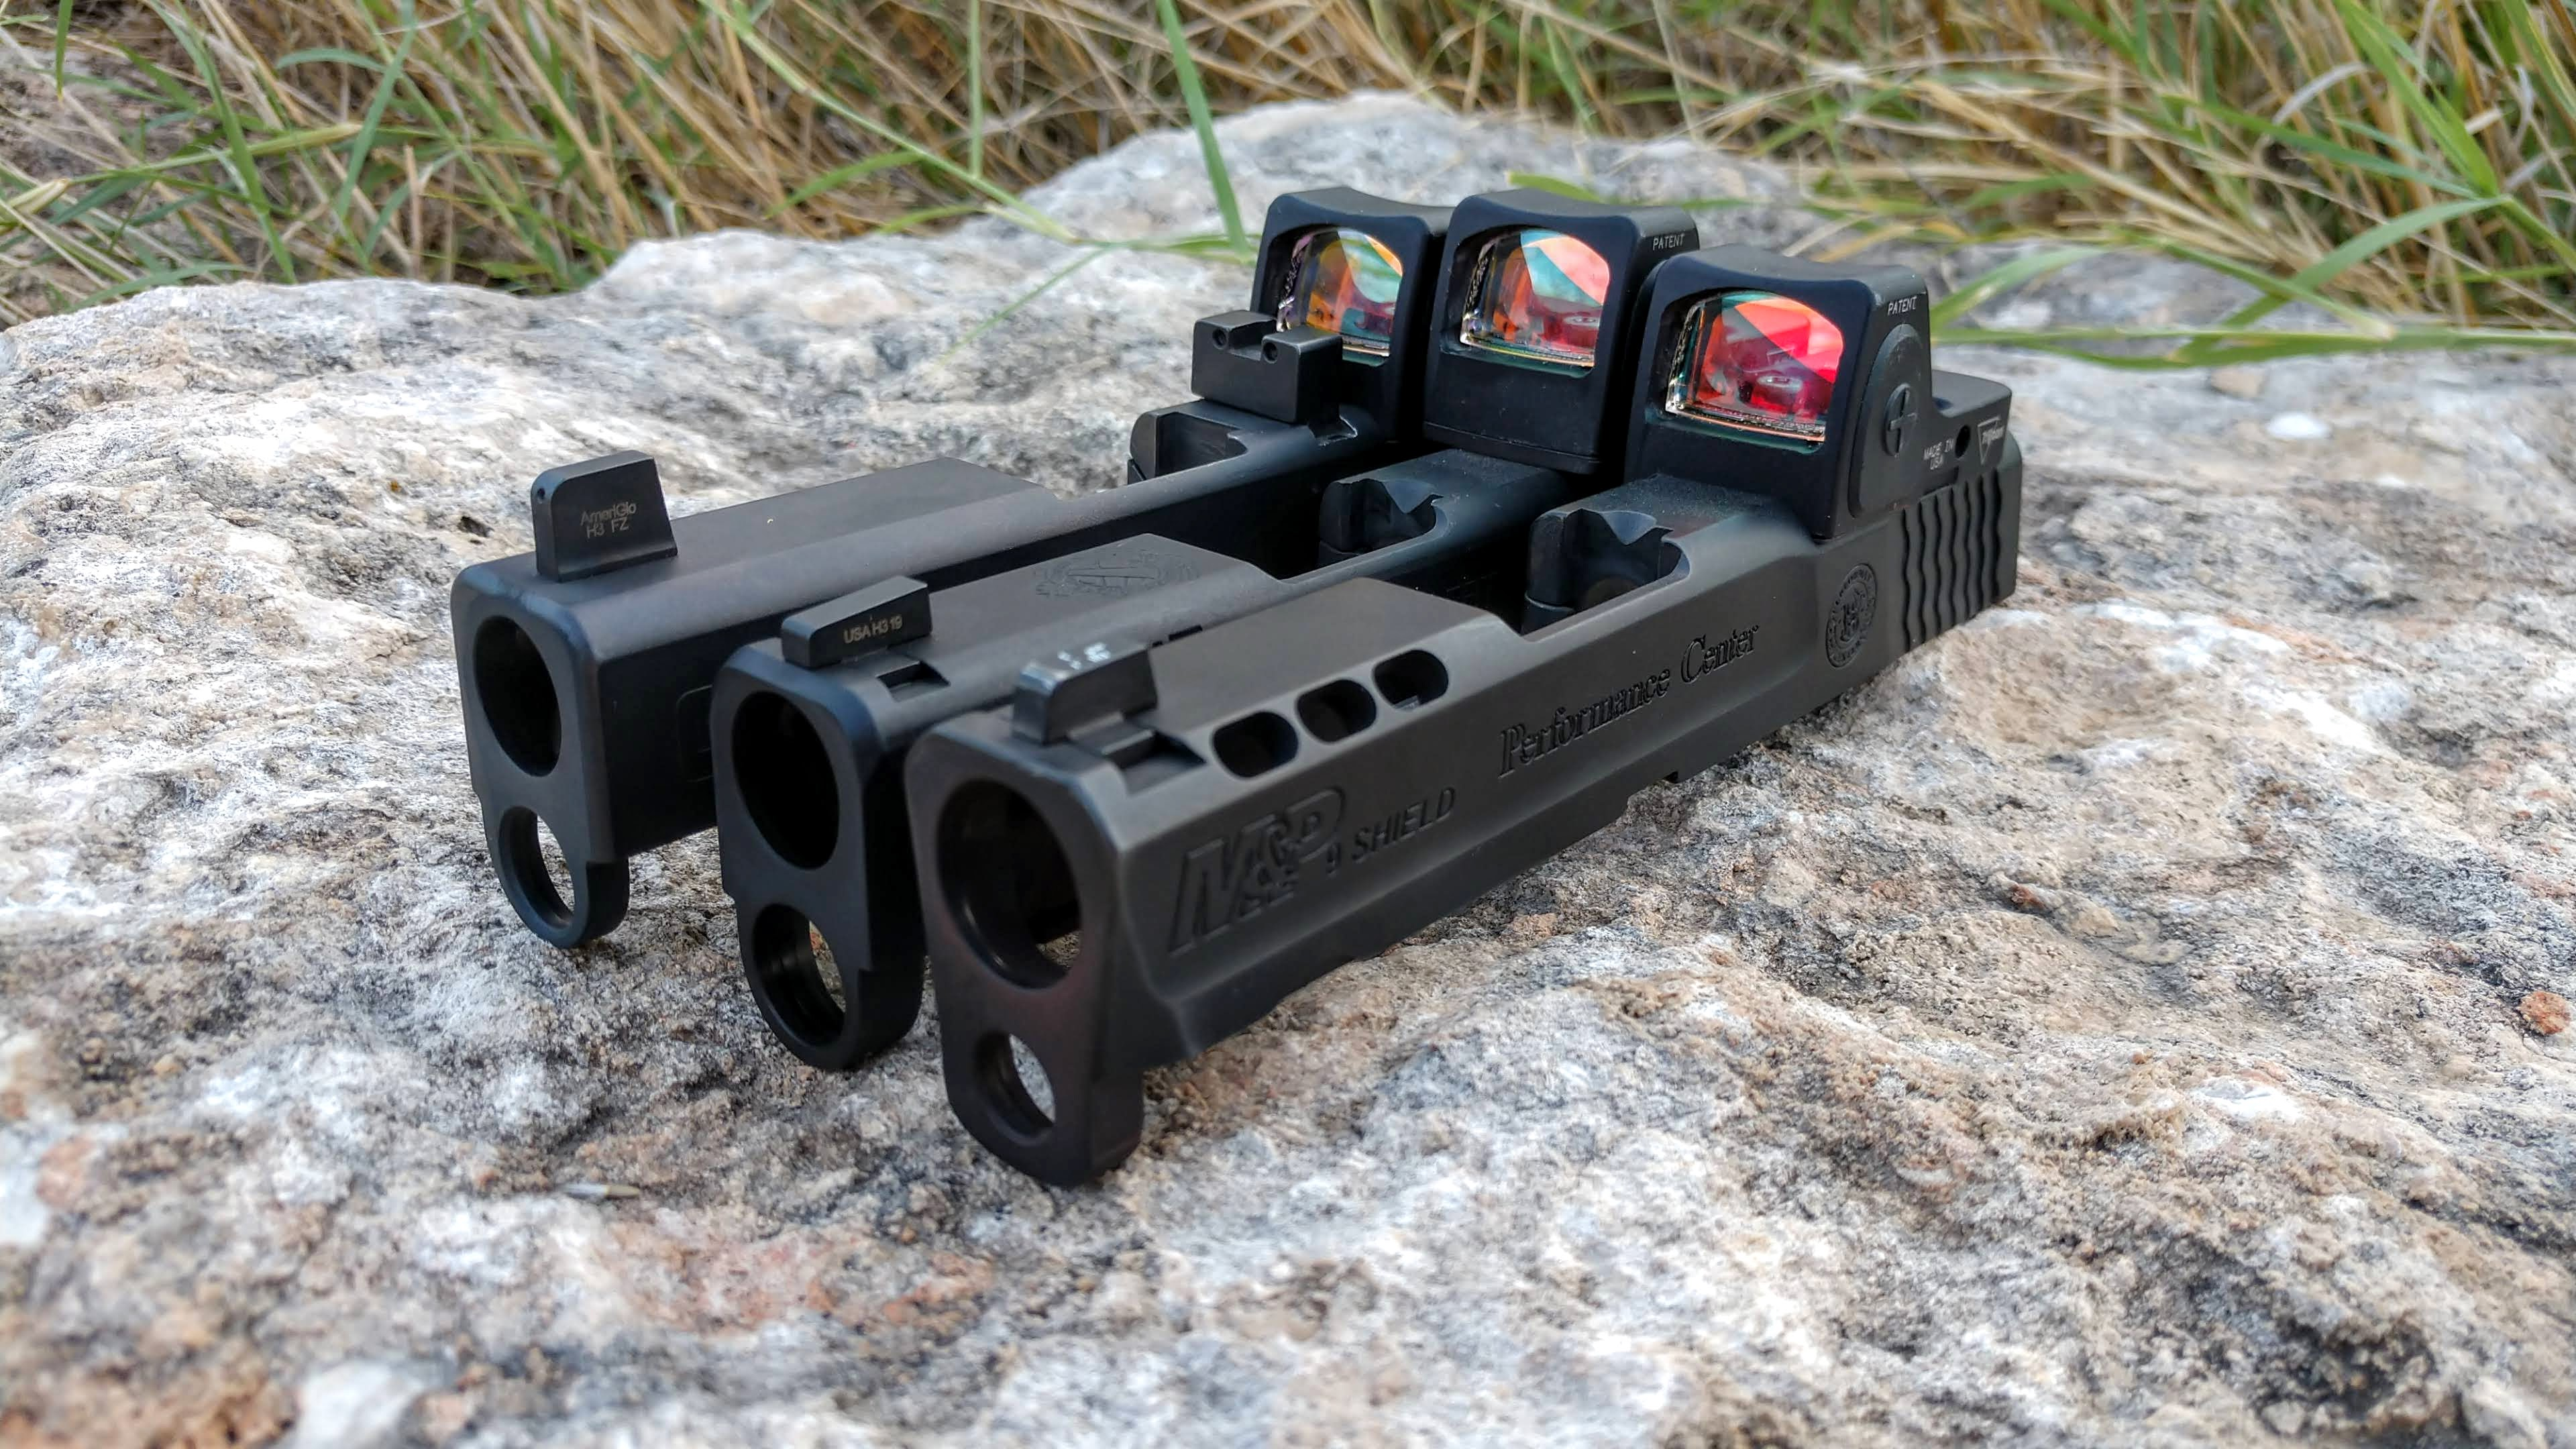 NEW Trijicon RMRcc Micro Red Dot for Concealed Carry Pistols